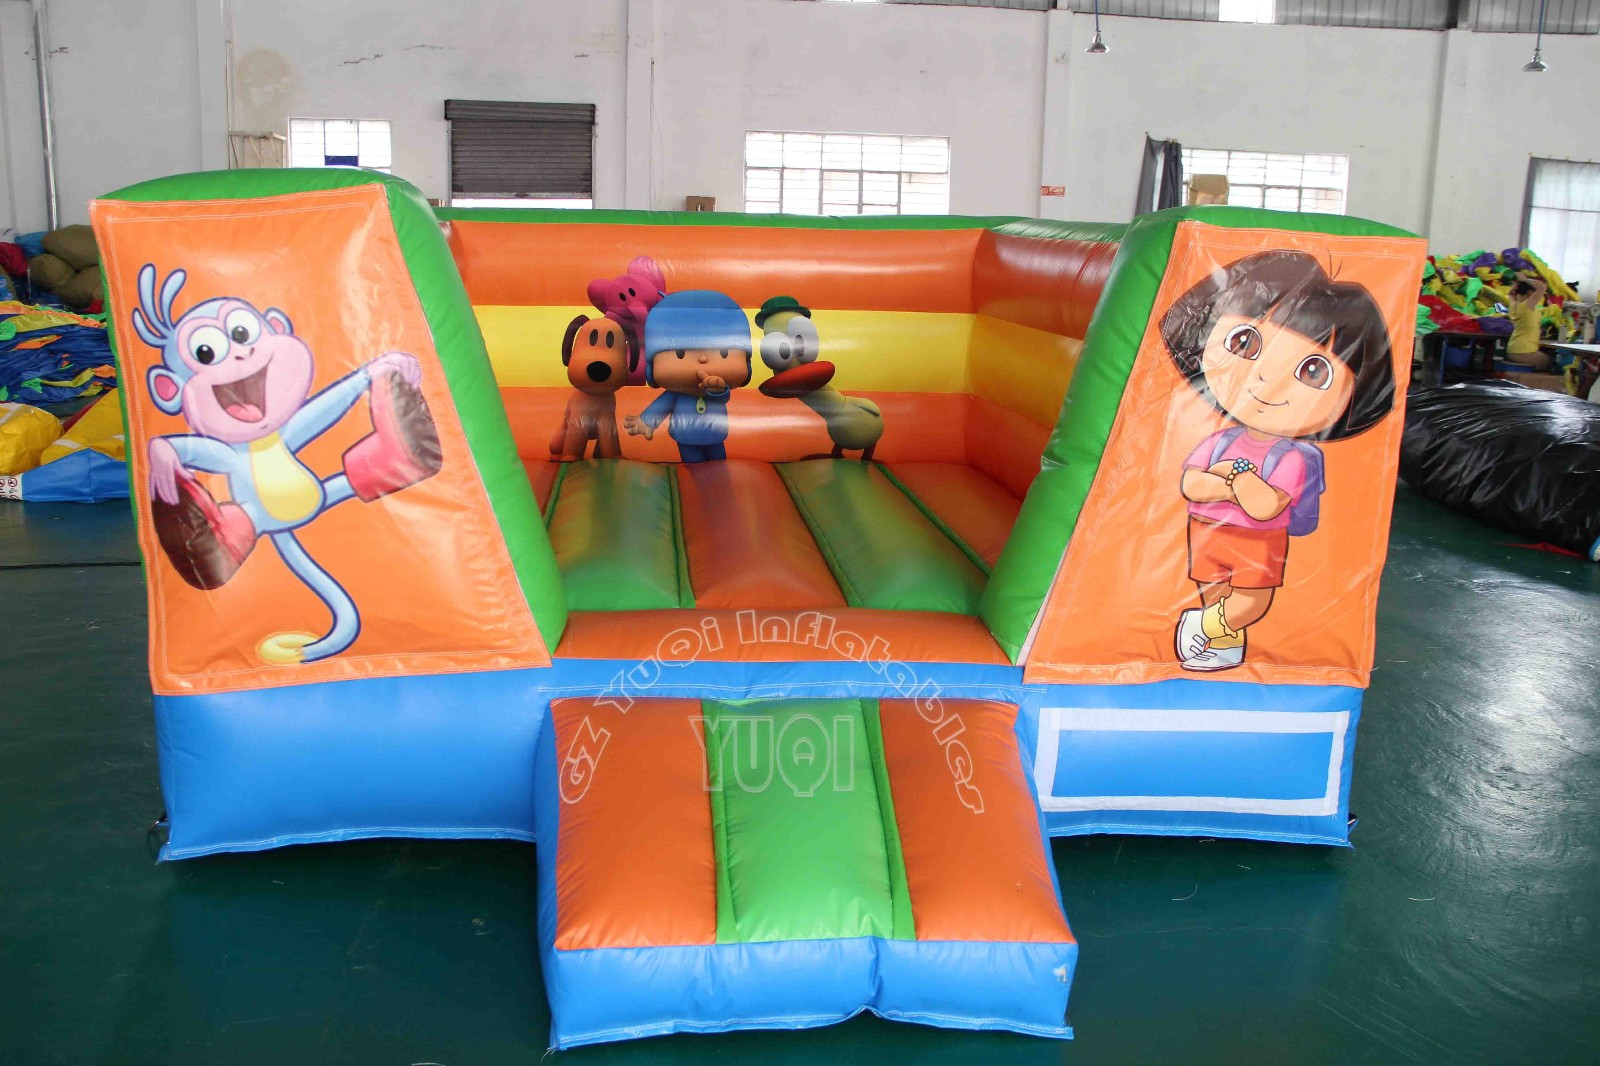 YUQI-Find Blow Up Bounce House slide Bouncer Sale On Yuqi Inflatables